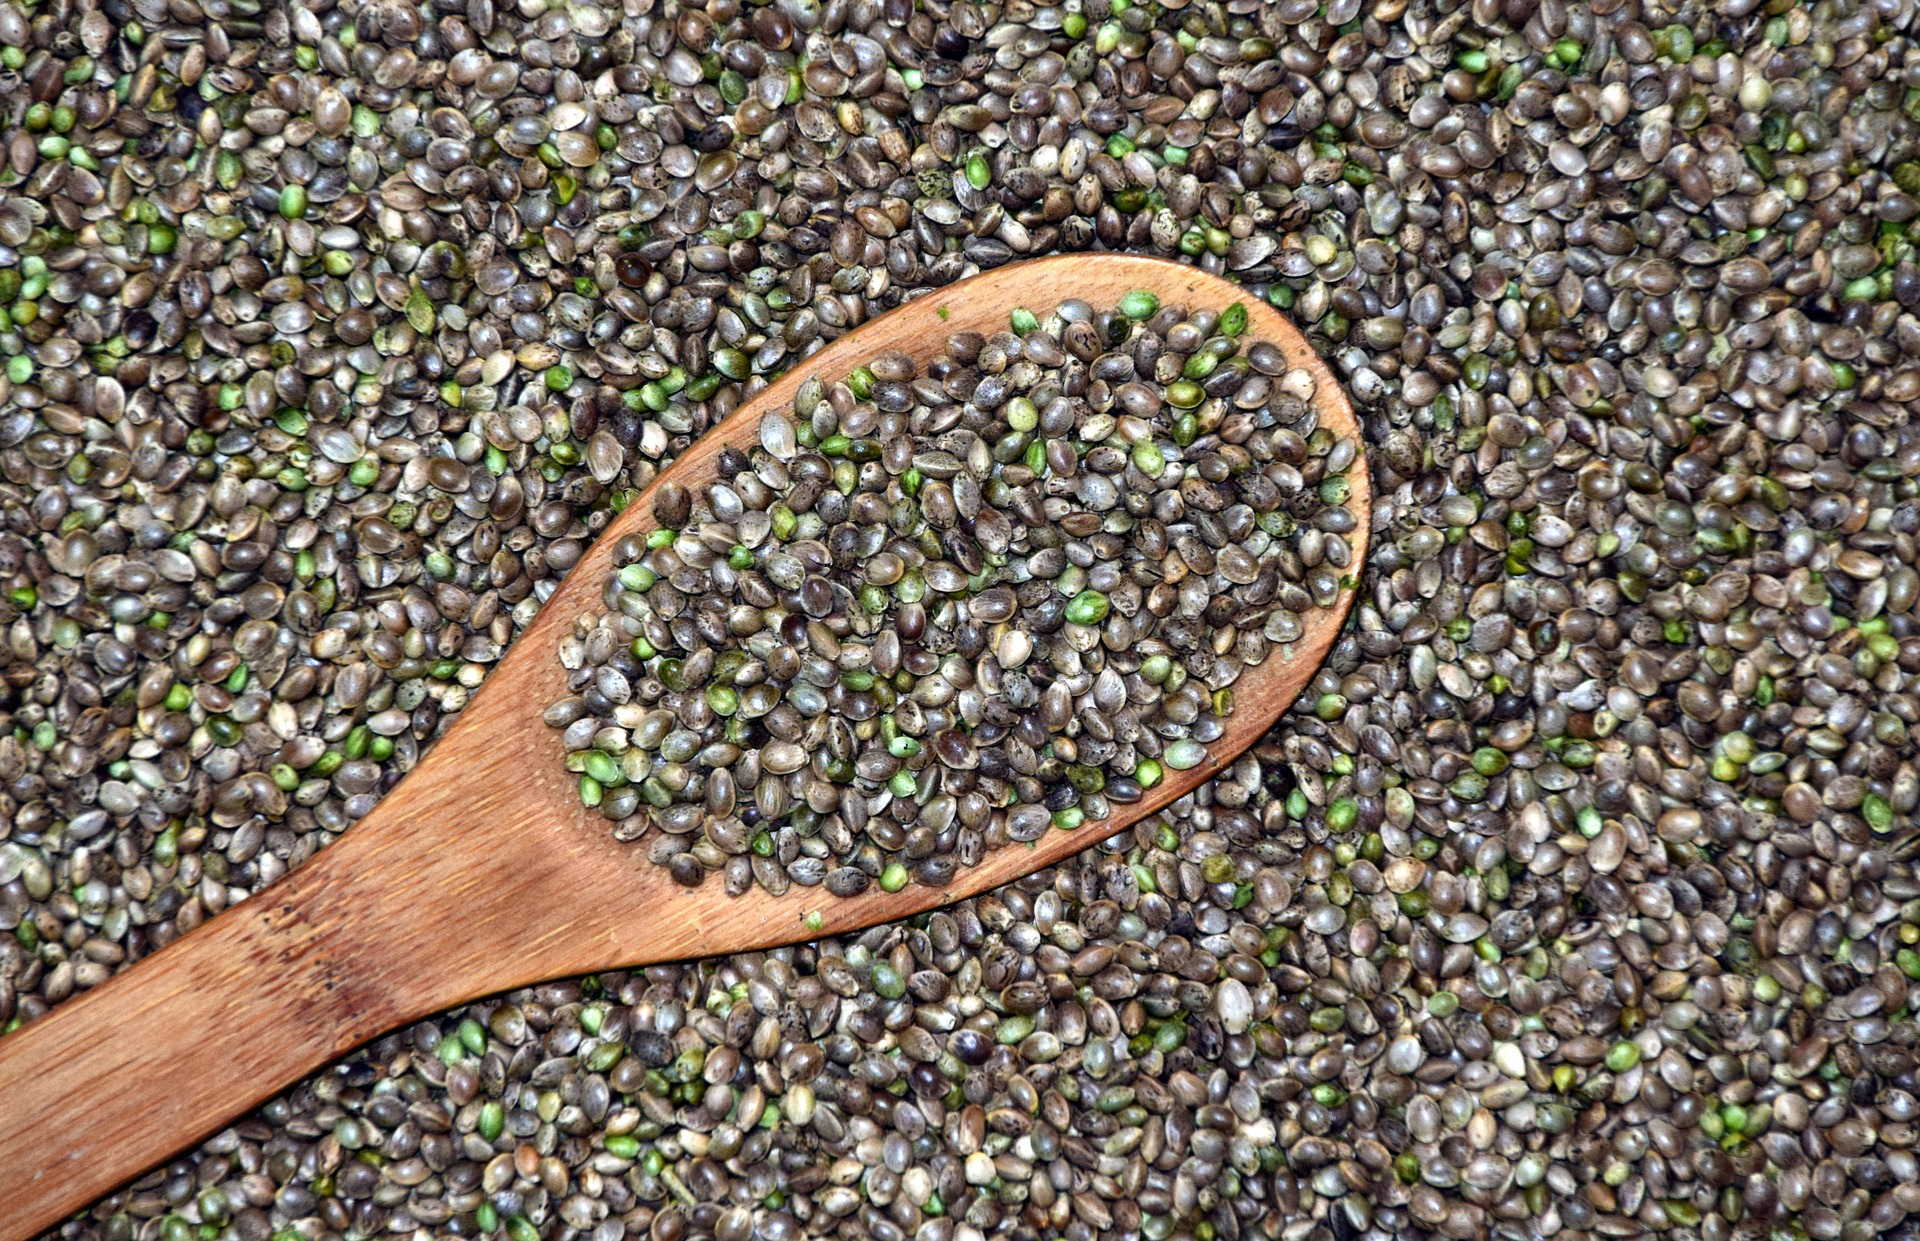 Green an brown seeds for hemp oil production